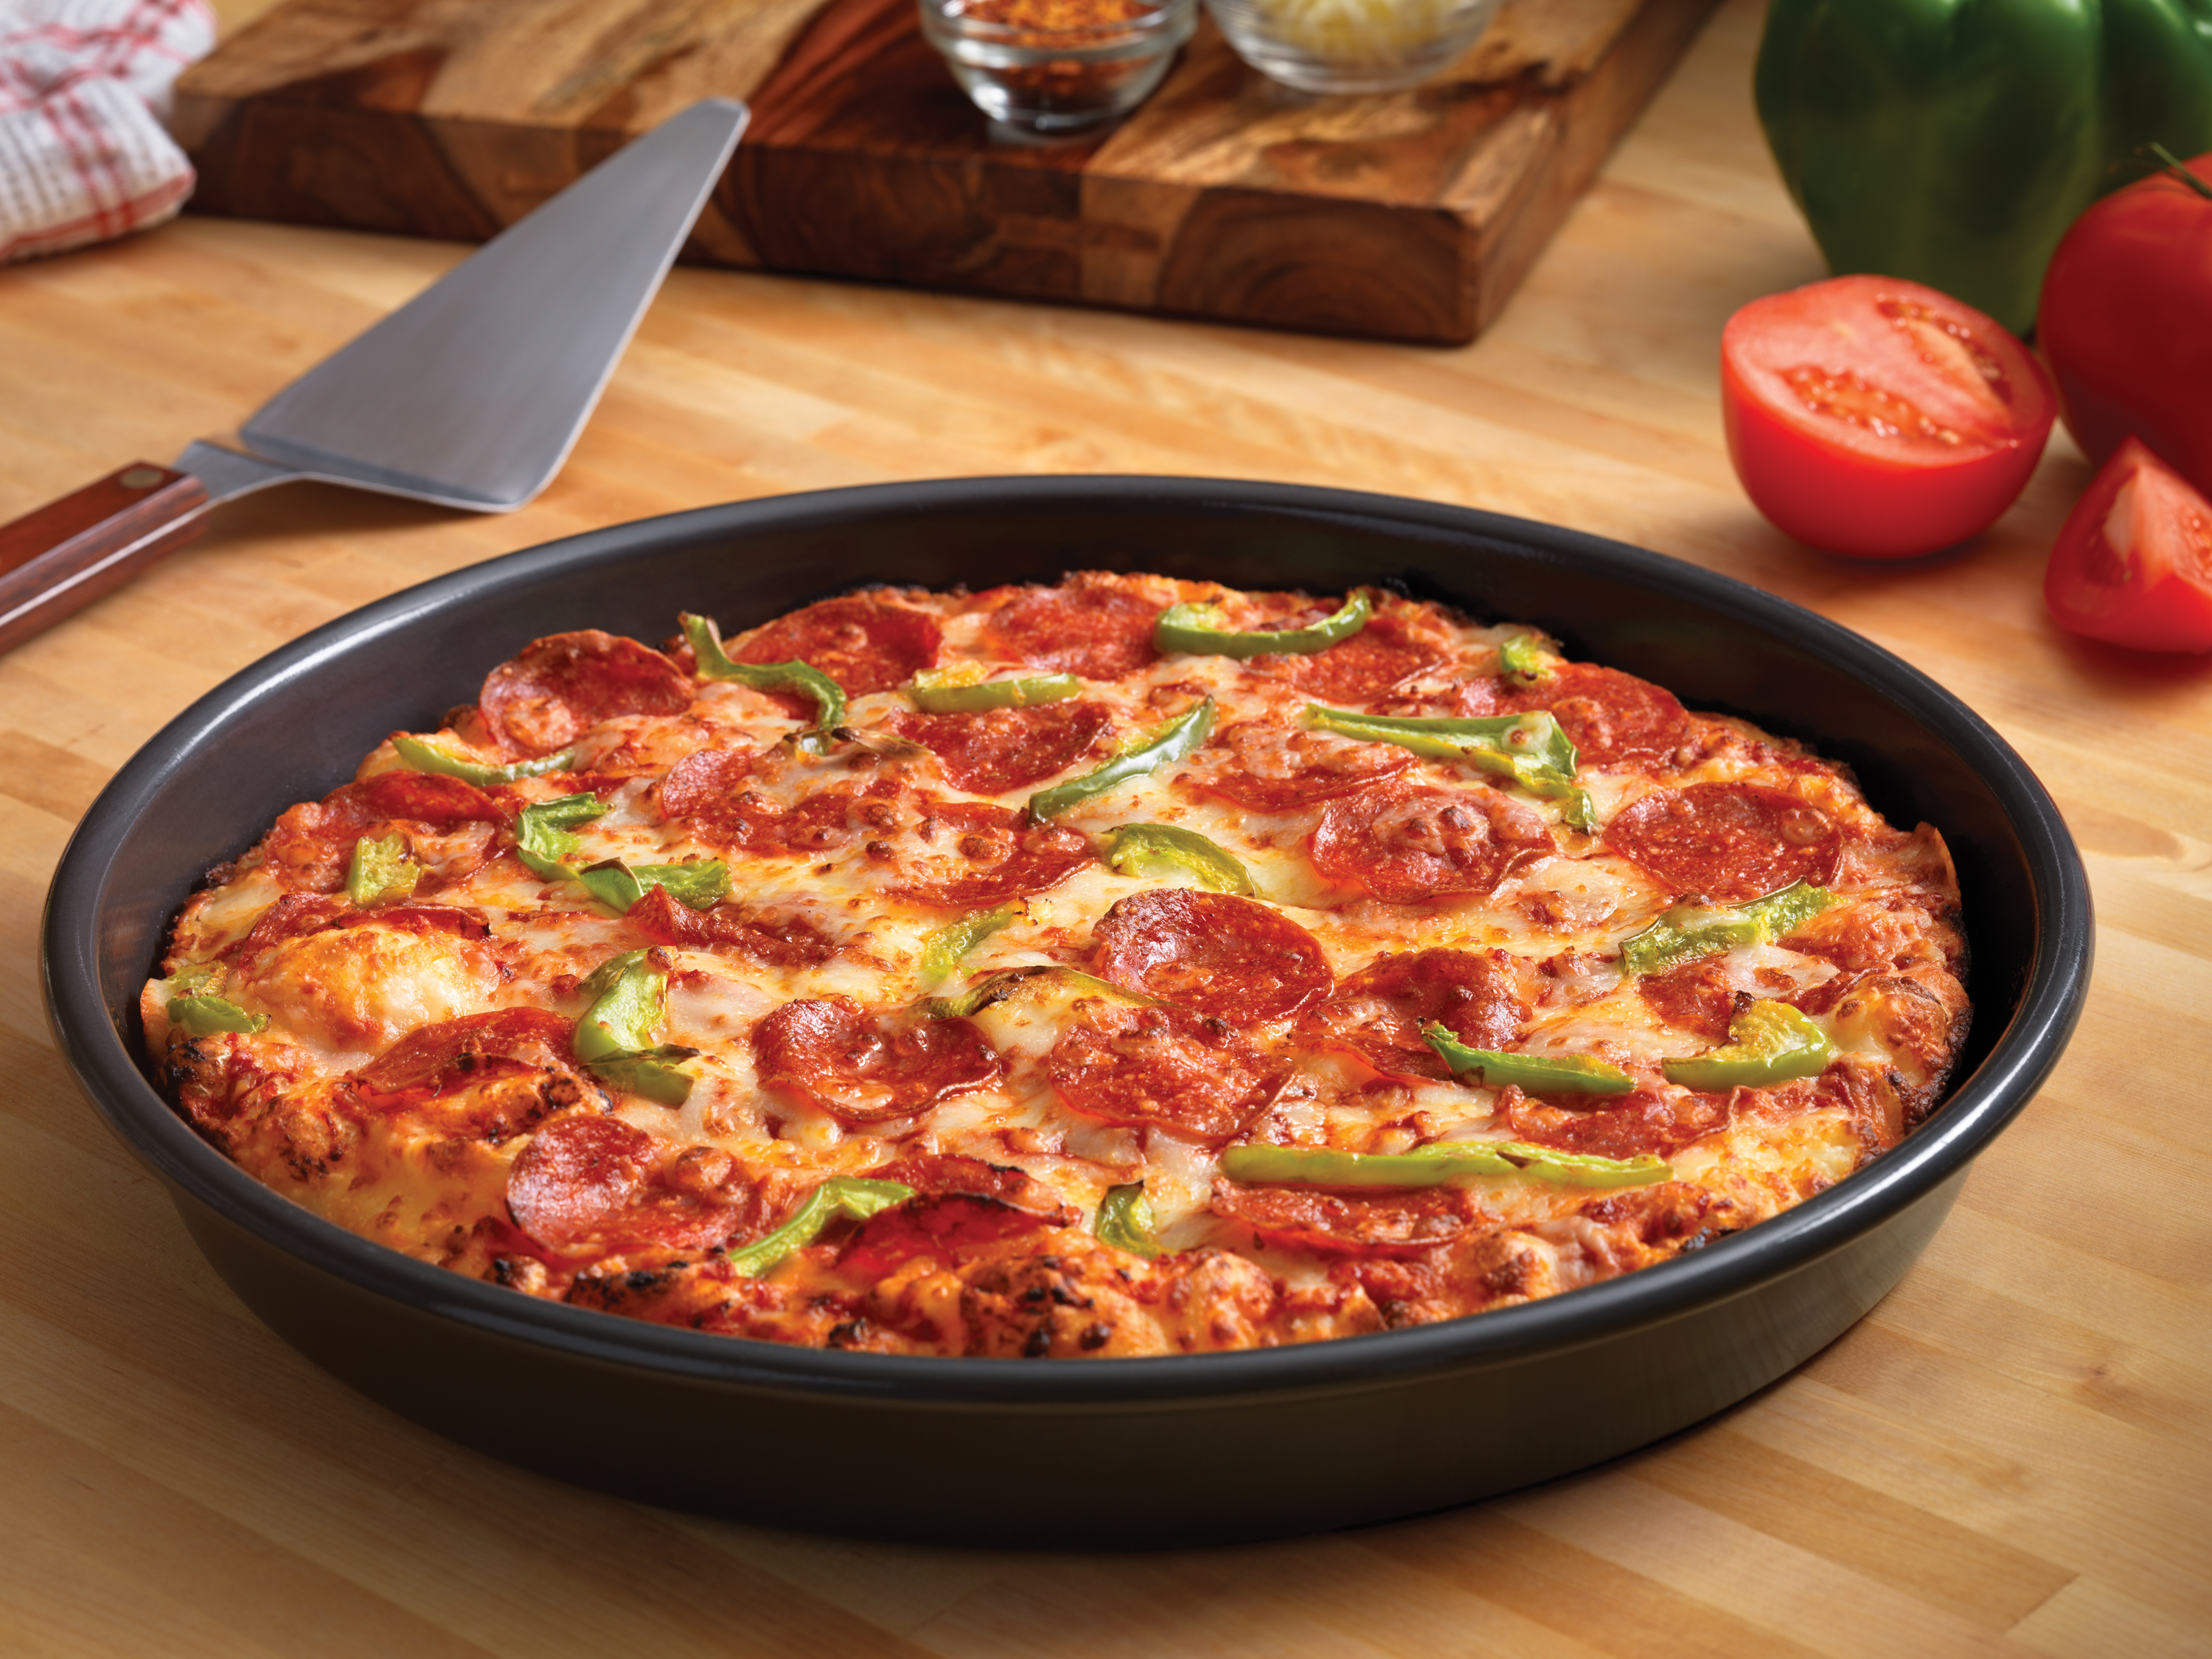 Forget Frozen Pizza Dough: Domino's Now Has Handmade Pan Pizzas in 5, 000 US Stores!